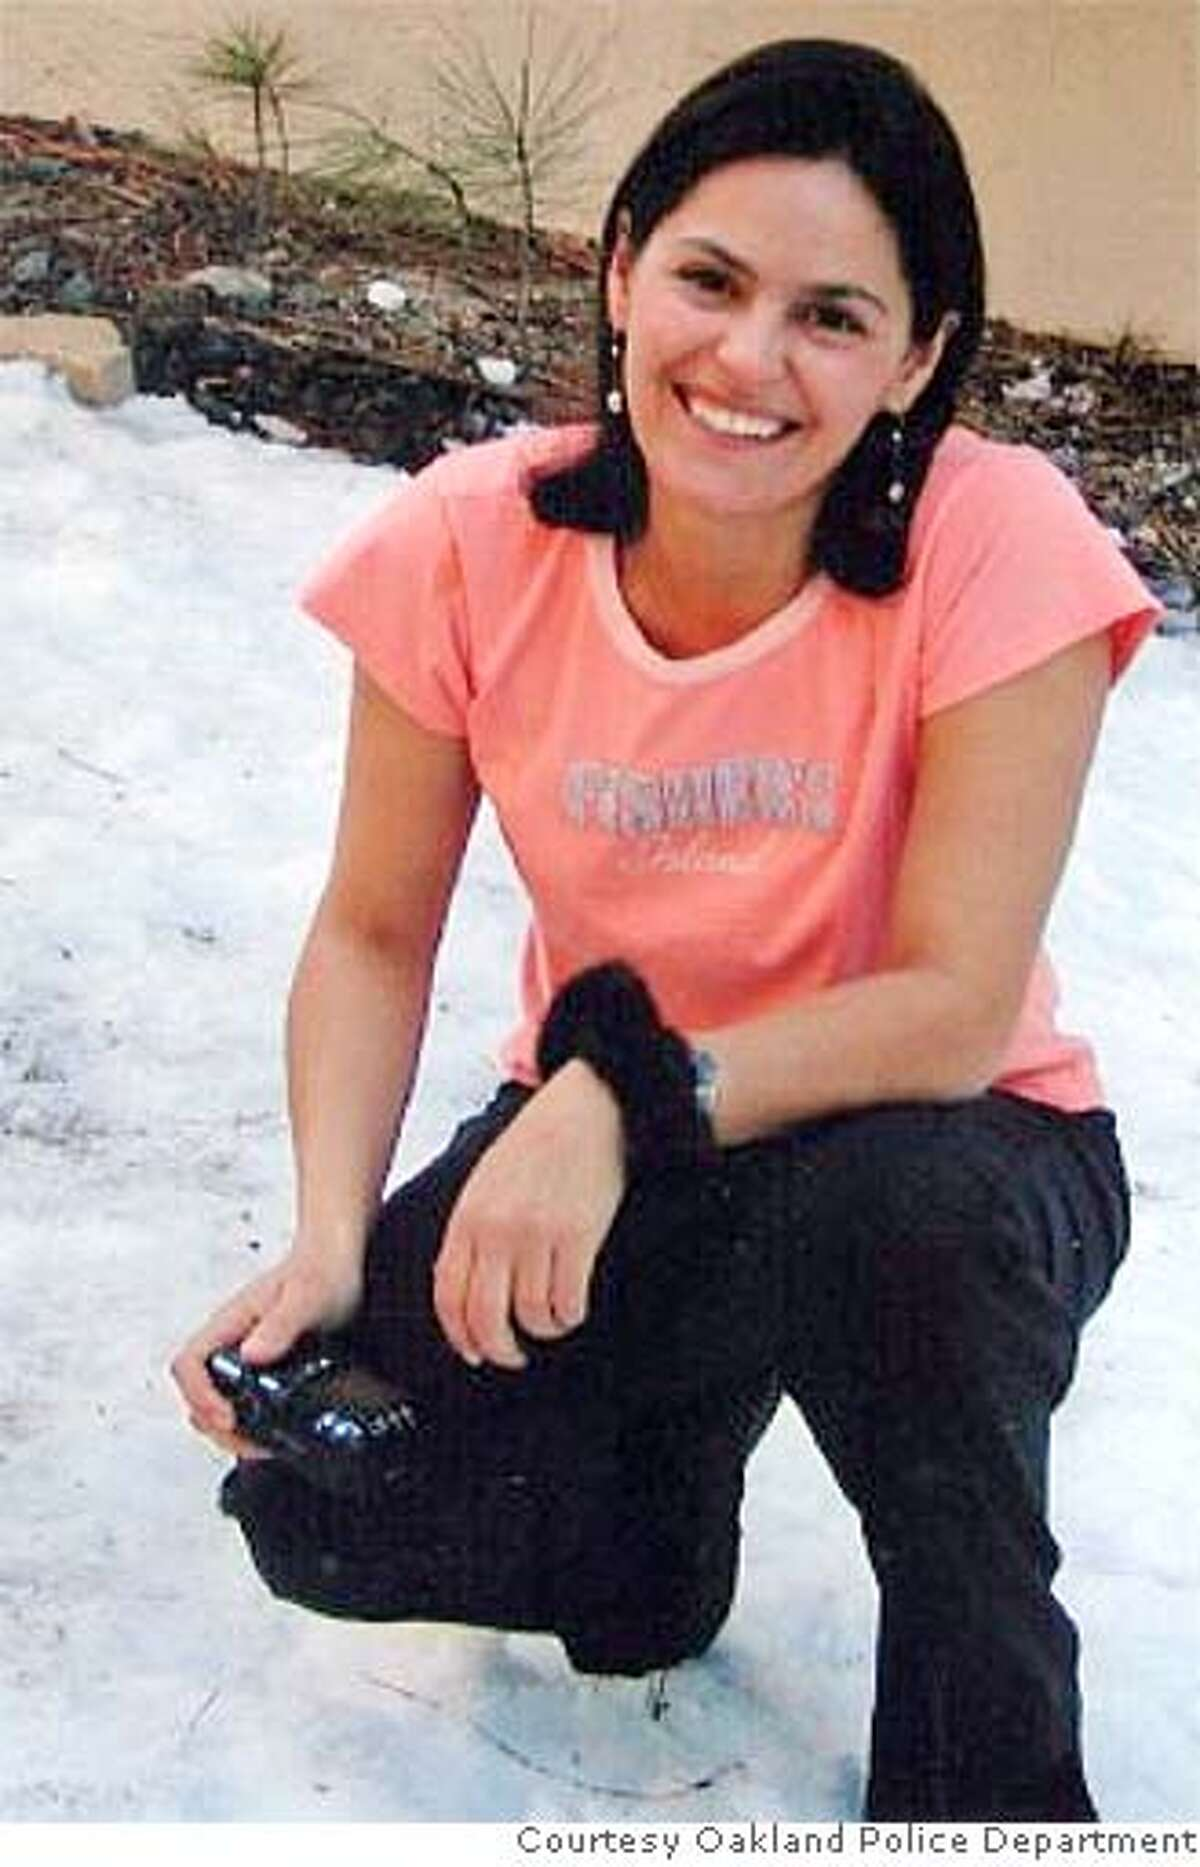 Nina Reiser, 31, was last seen at her husband's home dropping off their two children on Sept. 3. Police believe she is dead, but her body has not been found. Photo courtesy Oakland Police Department